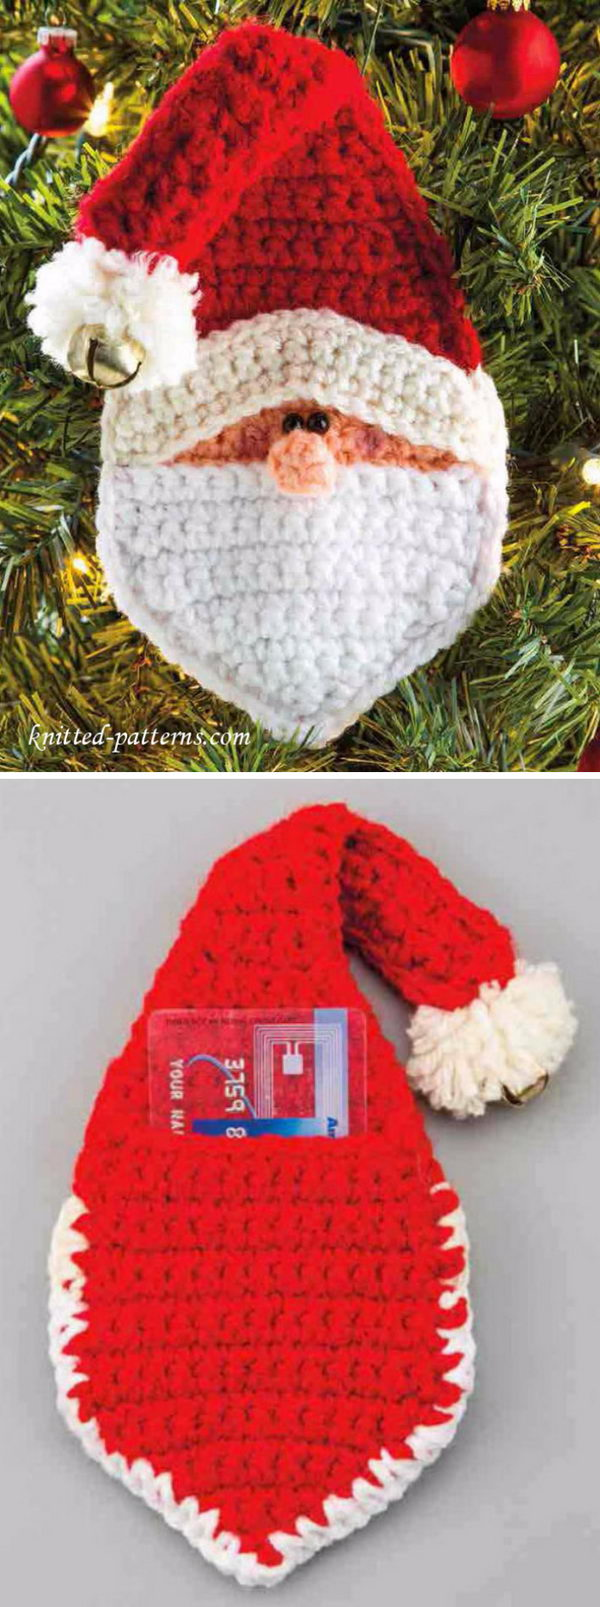 Crochet Santa Christmas Ornament With Gift Slit.